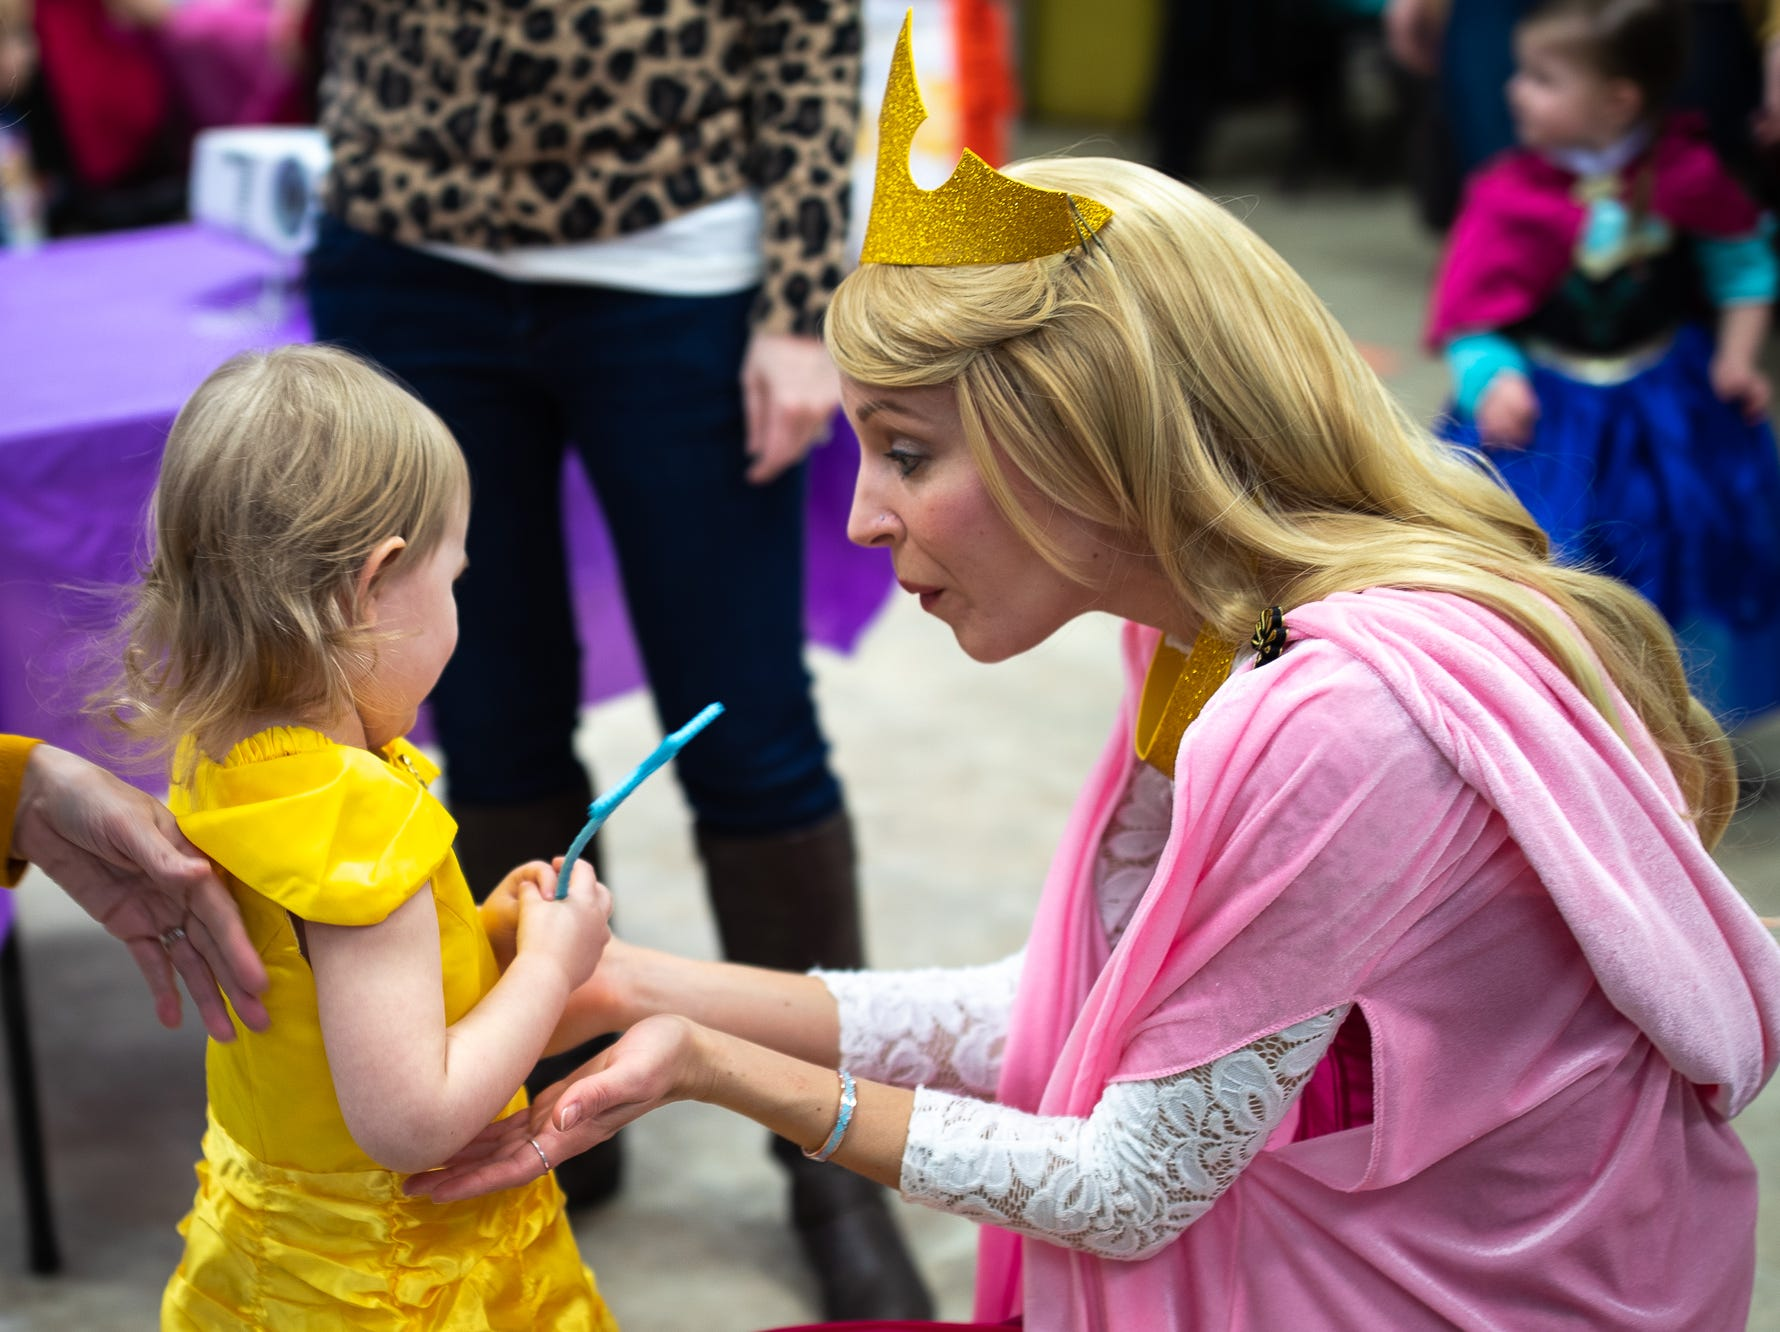 Lyla, 3, is greeted by Princess Aurora during a princess teatime hosted by the Black Rose Rollers, Saturday, Feb. 9, 2019, at the Hanover YWCA.